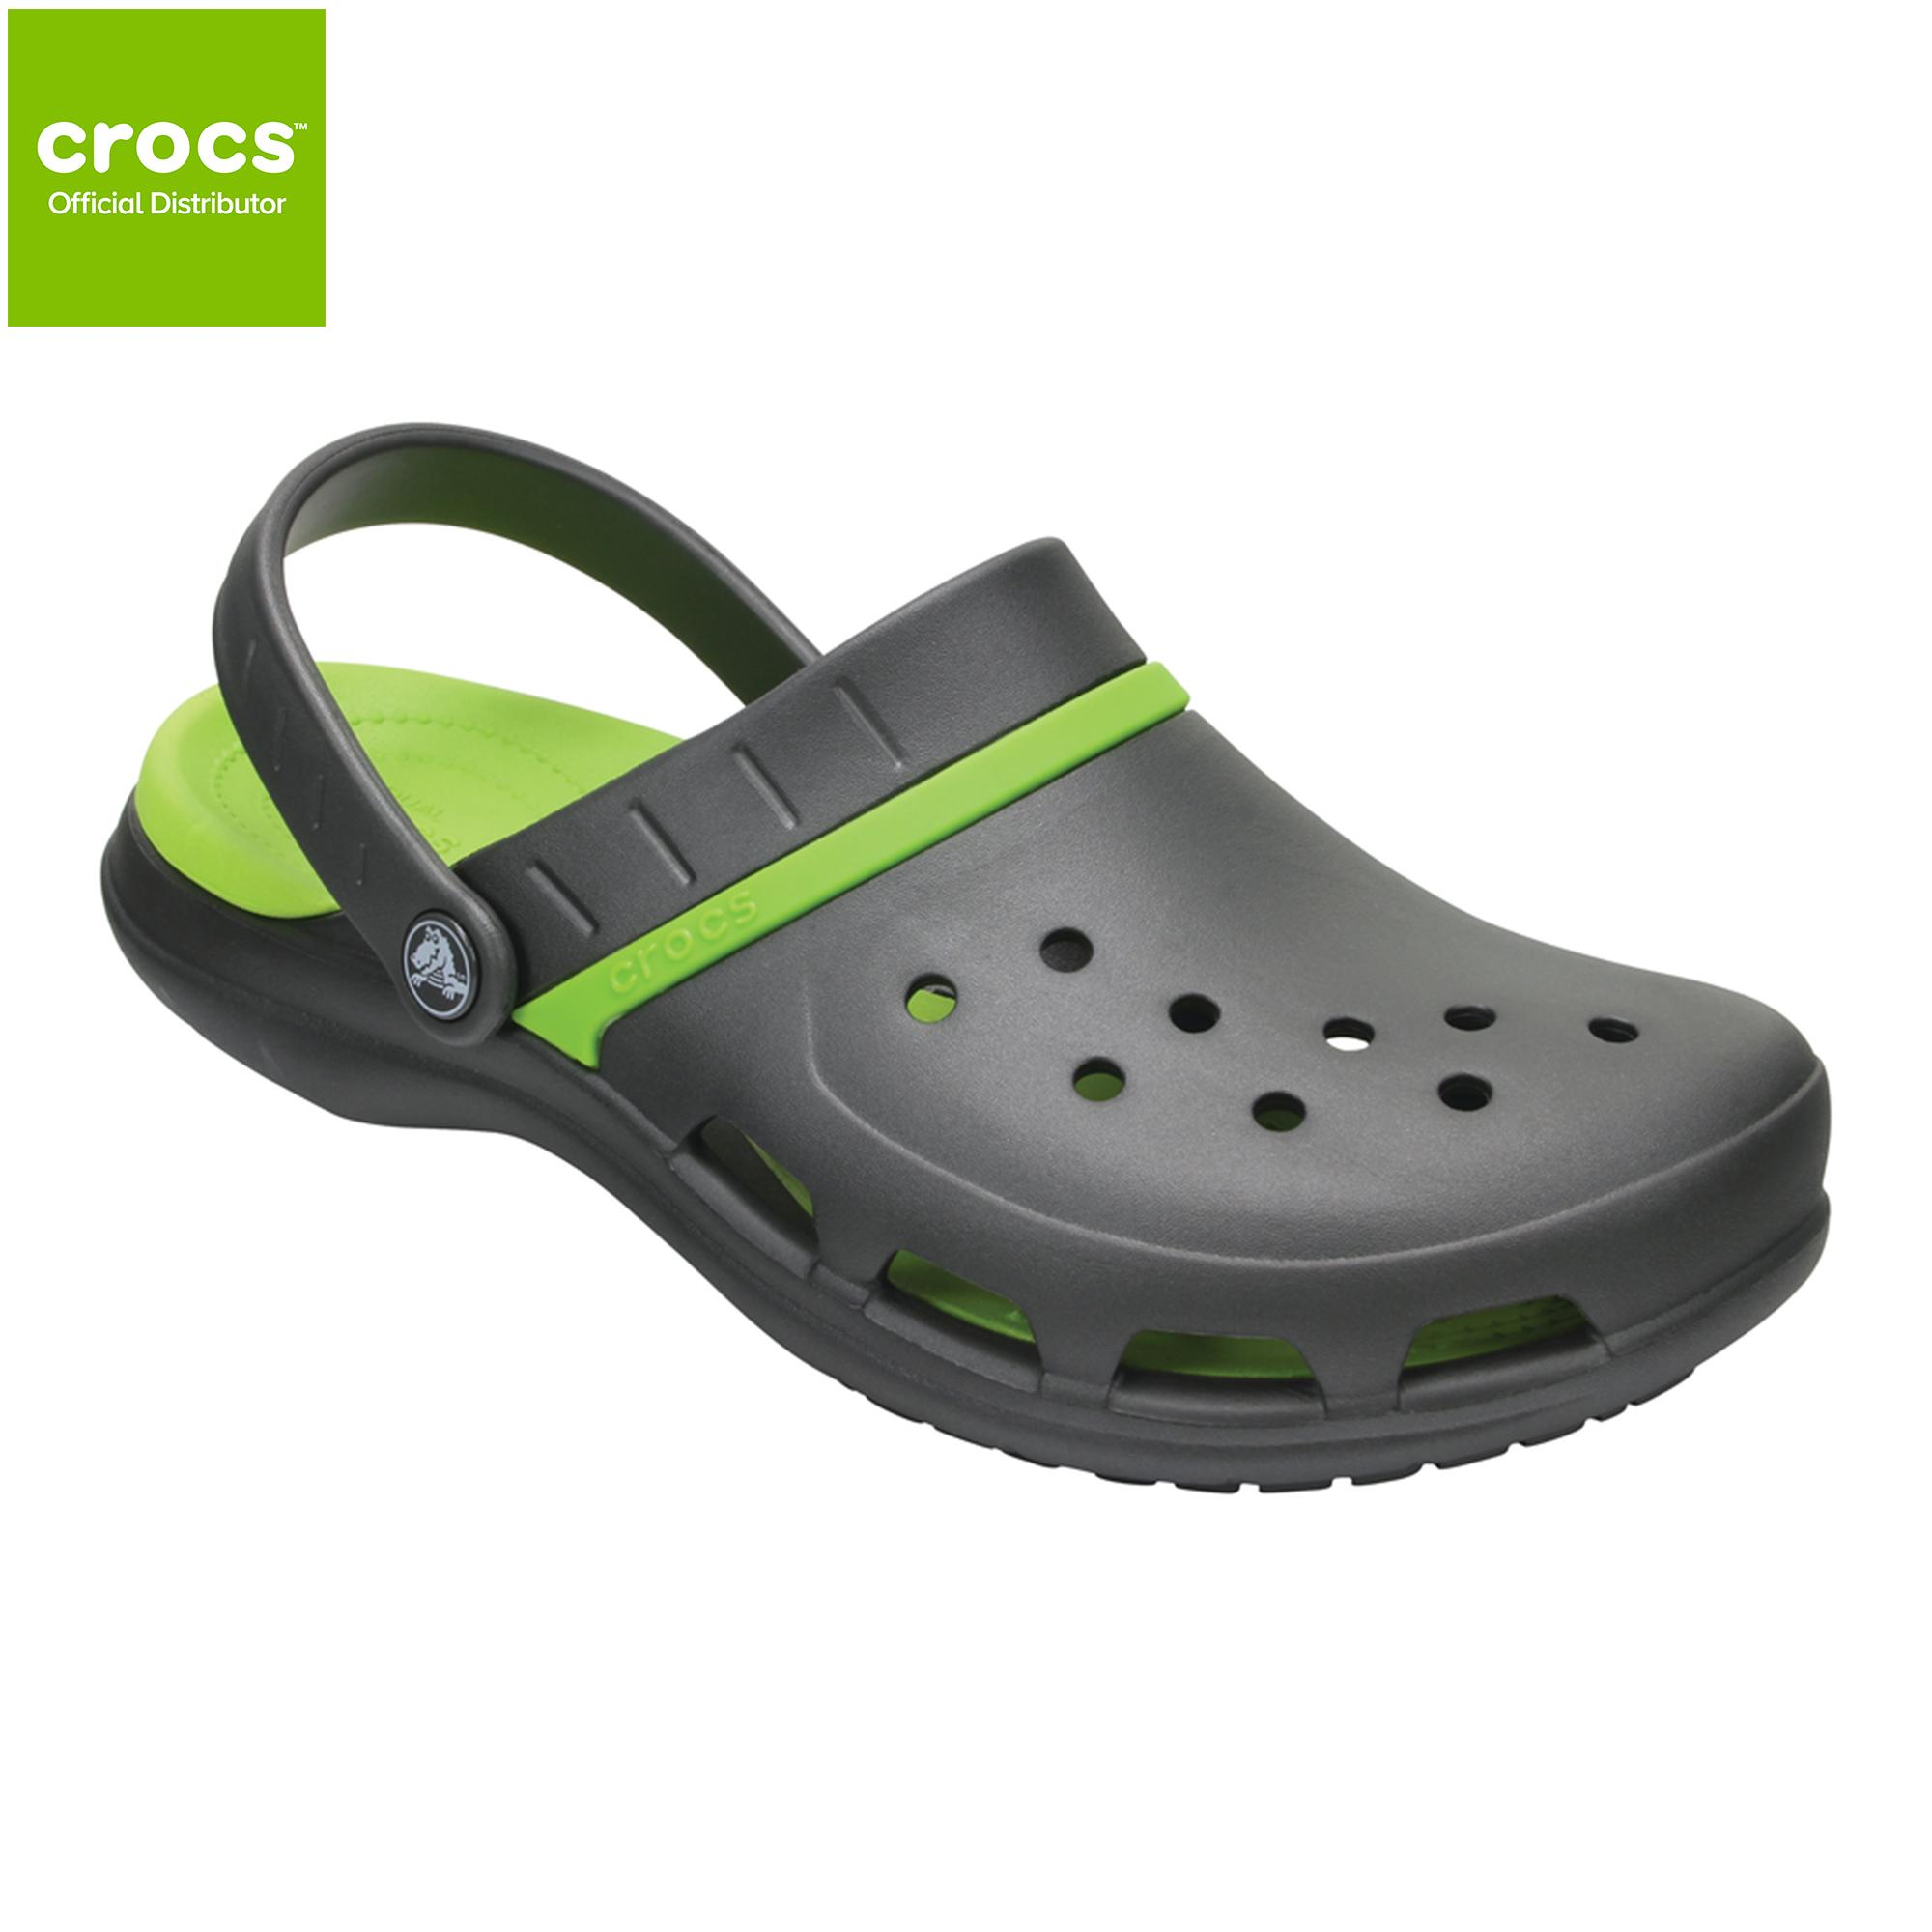 e9ce6ab943d954 Crocs Philippines  Crocs price list - Crocs Flats